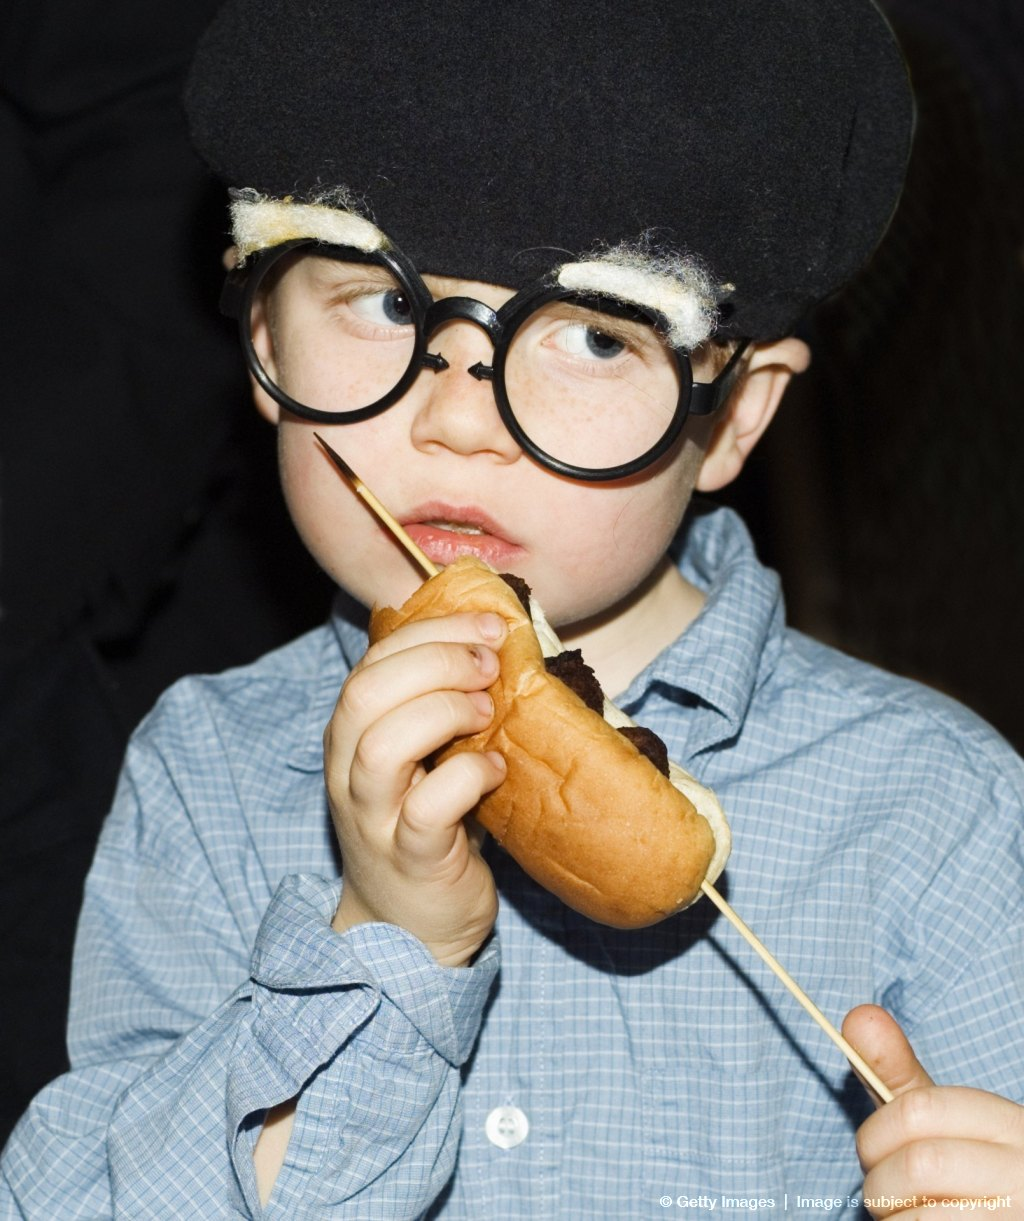 A boy at a masquerade eating.